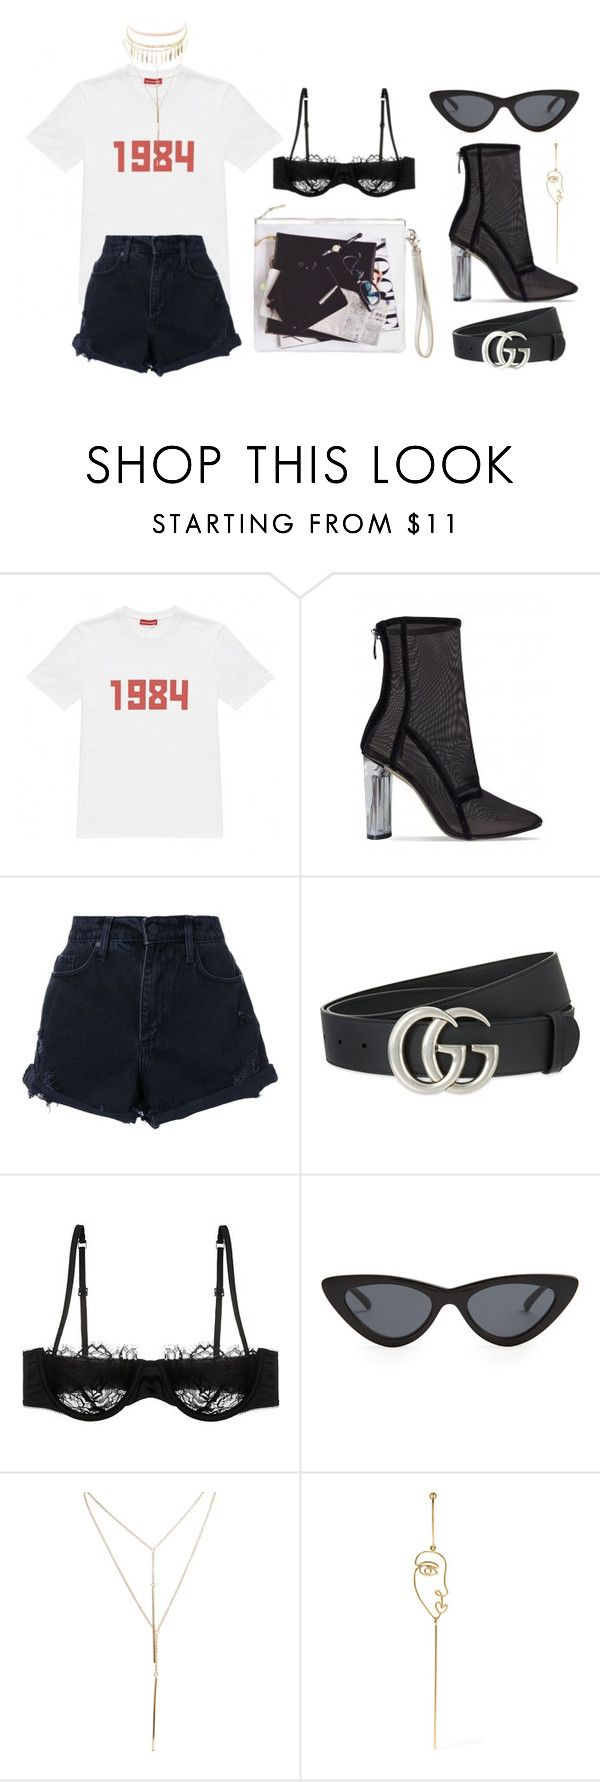 """1984"" by mimiih on Polyvore featuring Gosha Rubchinskiy, Nobody Denim, Gucci, Morgan Lane, A'N'D, Le Specs, Wet Seal, Sarah & Sebastian and Charlotte Russe"